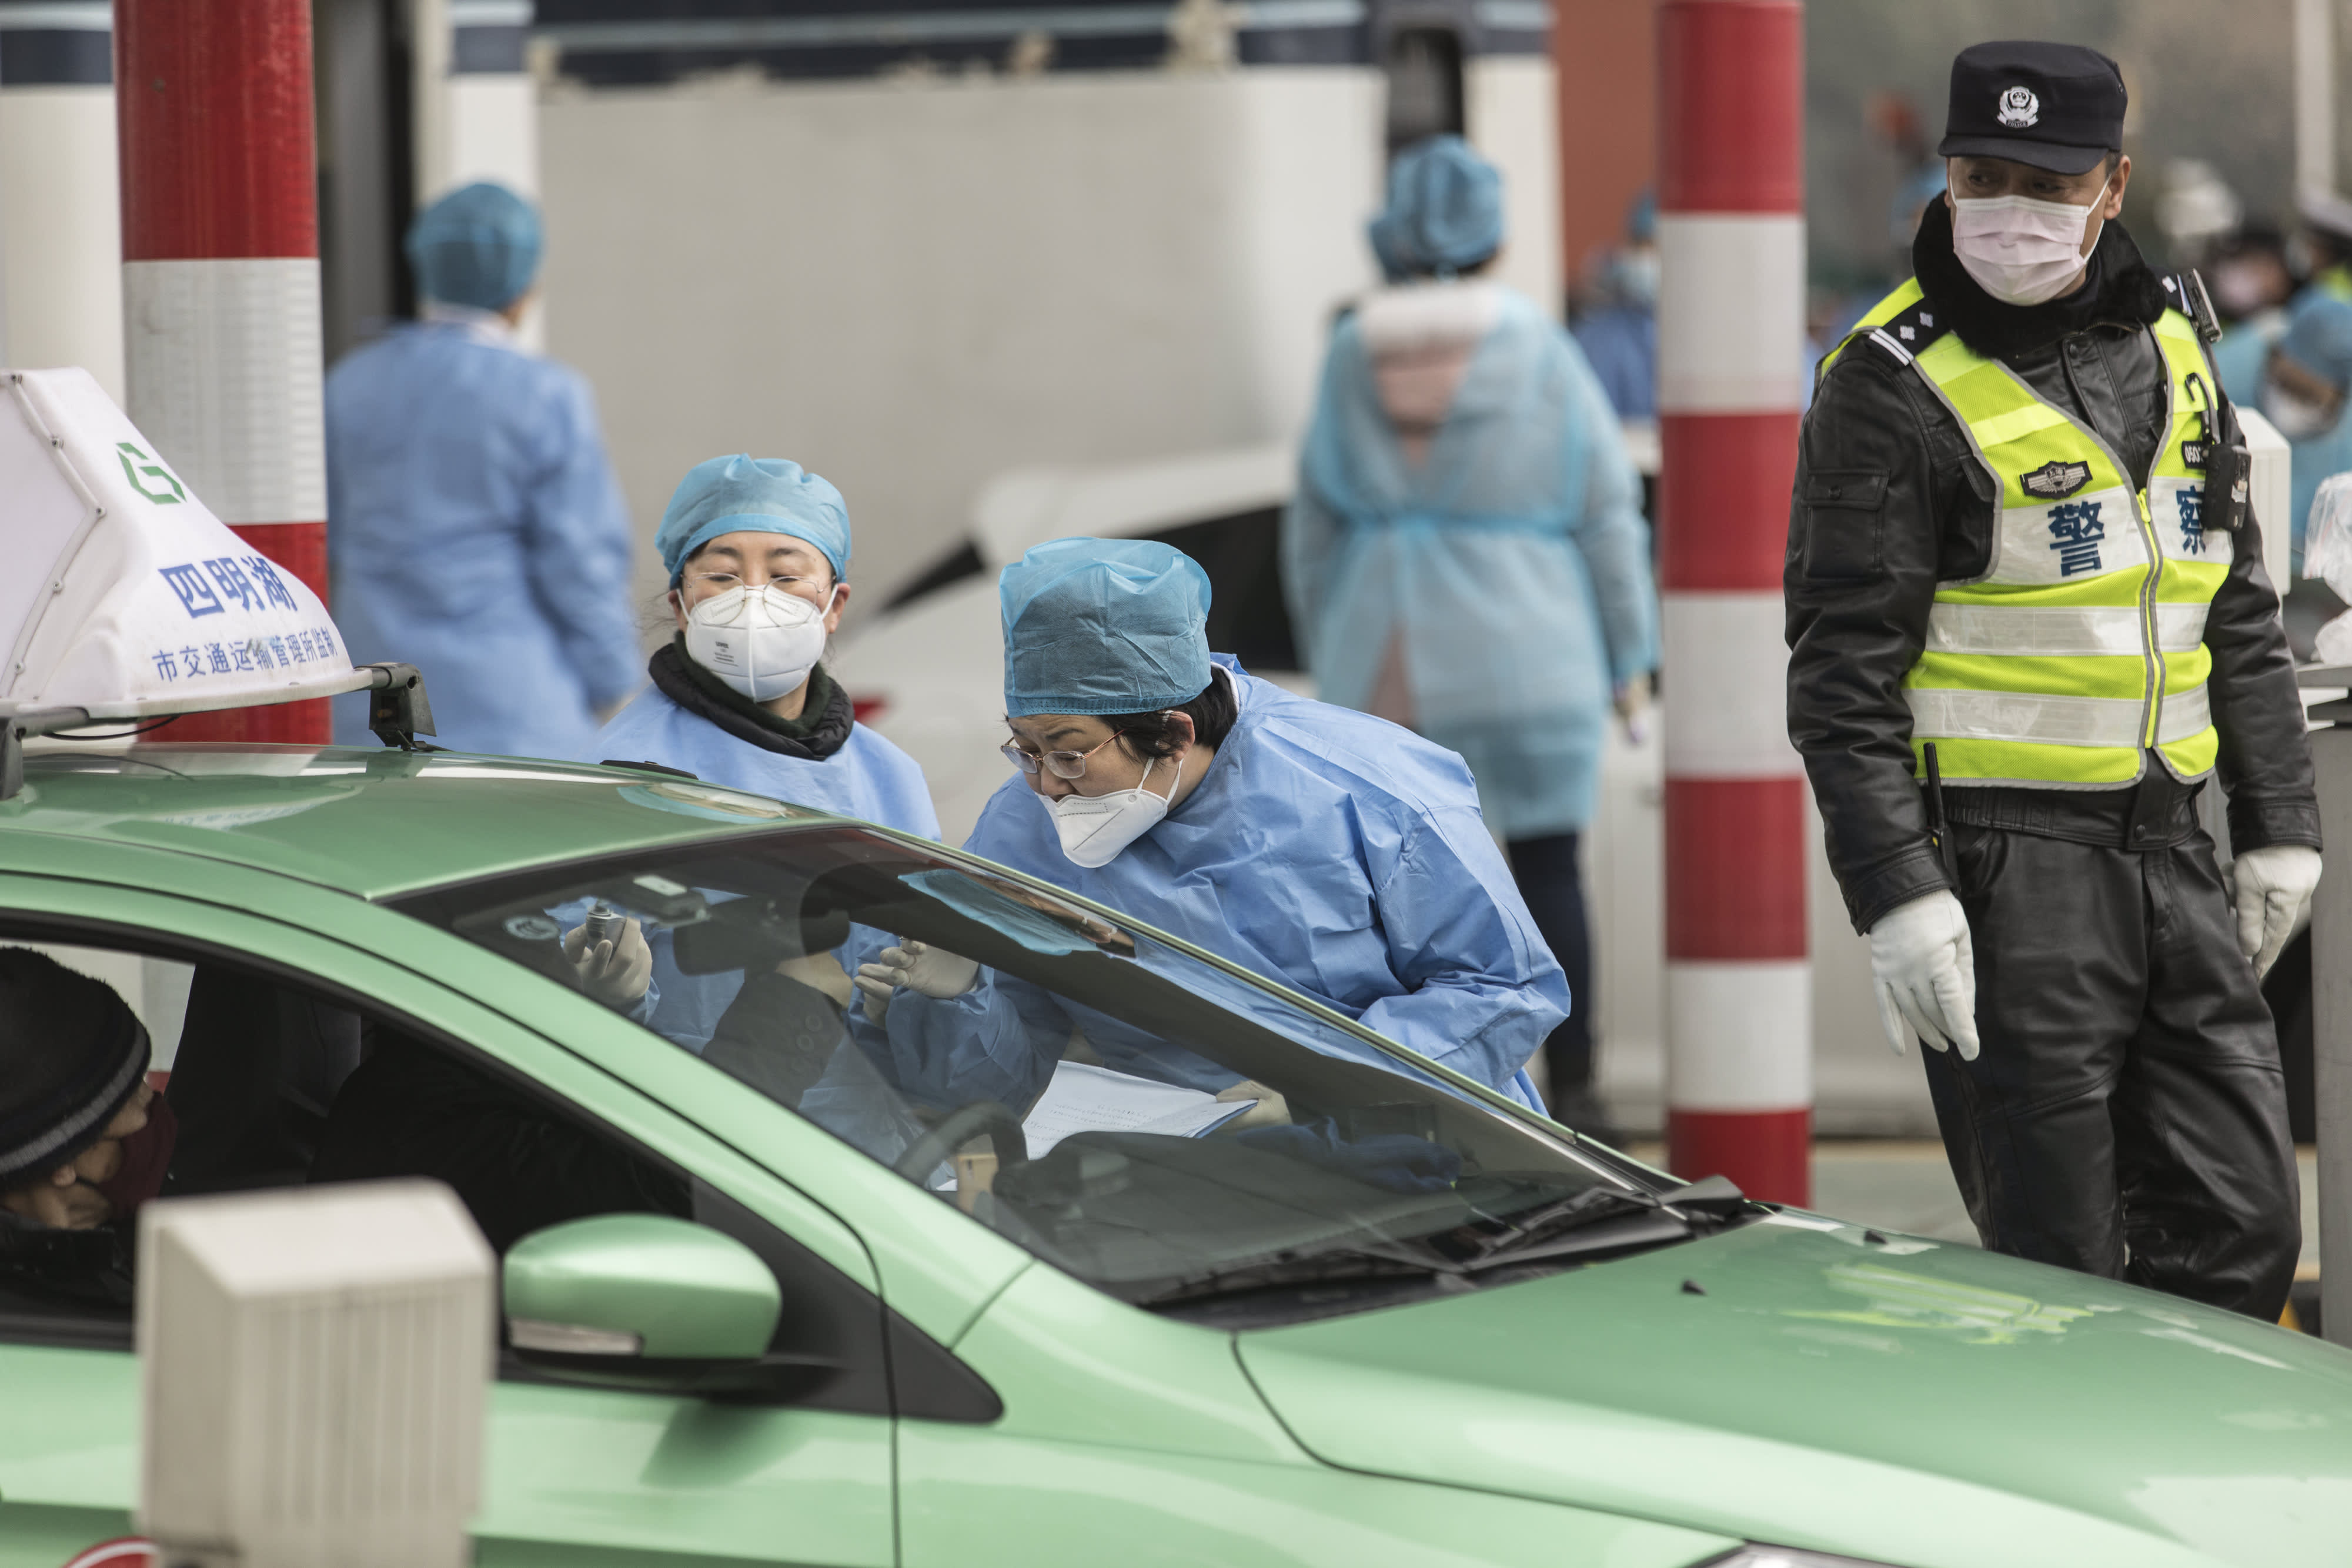 Coronavirus live updates: China says death toll hits 213, confirmed cases rise to 9,692